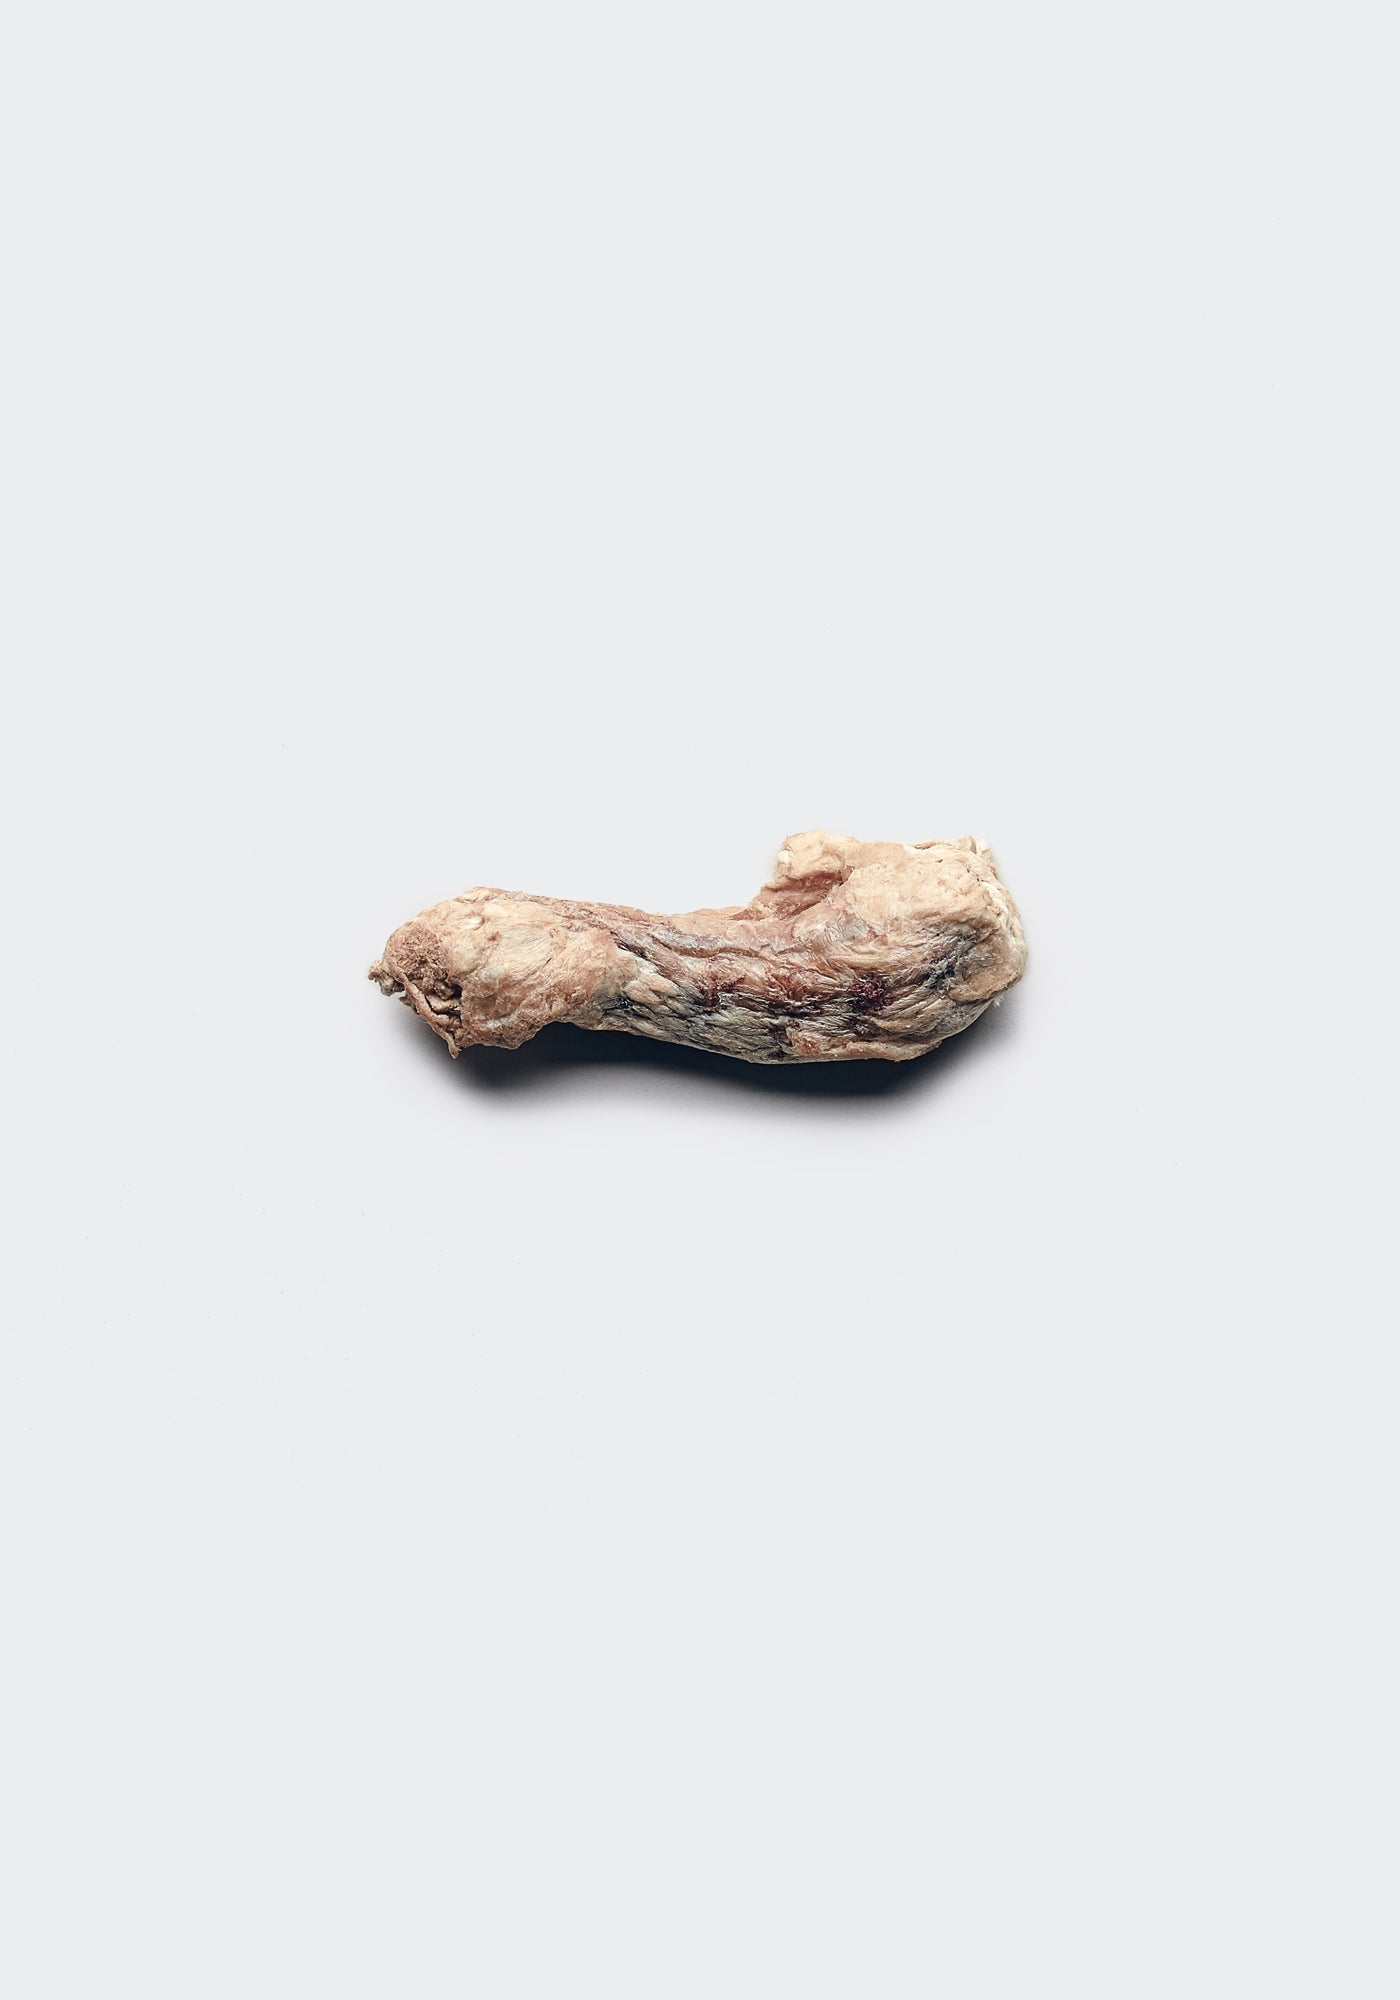 Chicken neck (single)